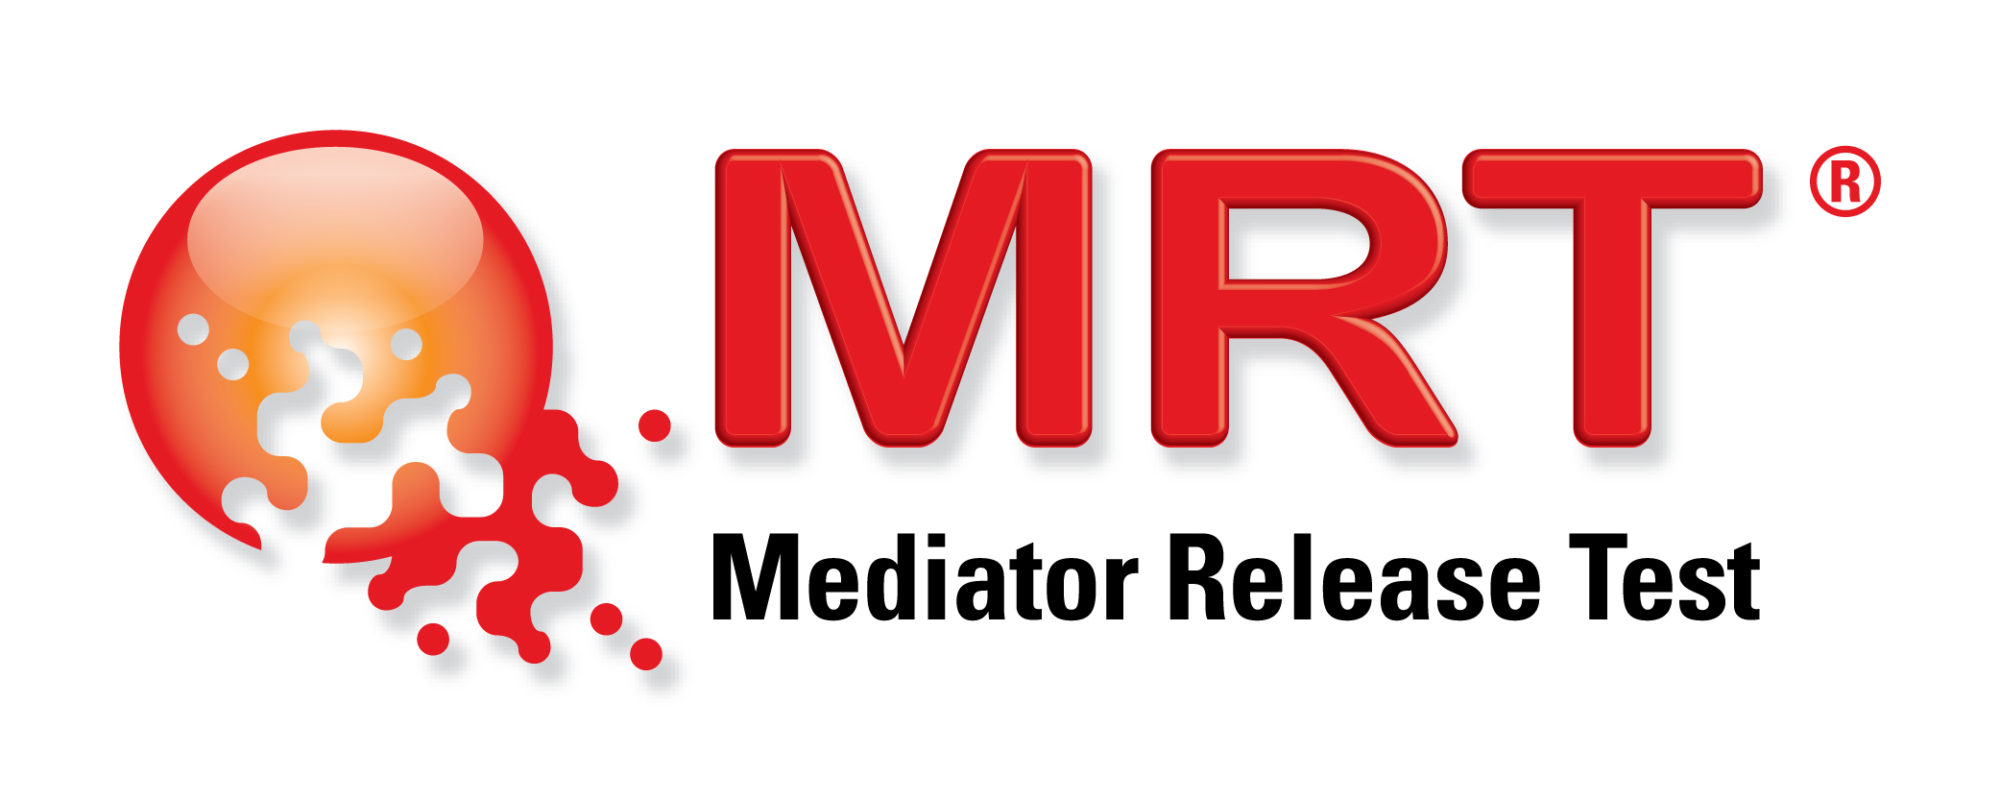 The Patented Mediator Release Test